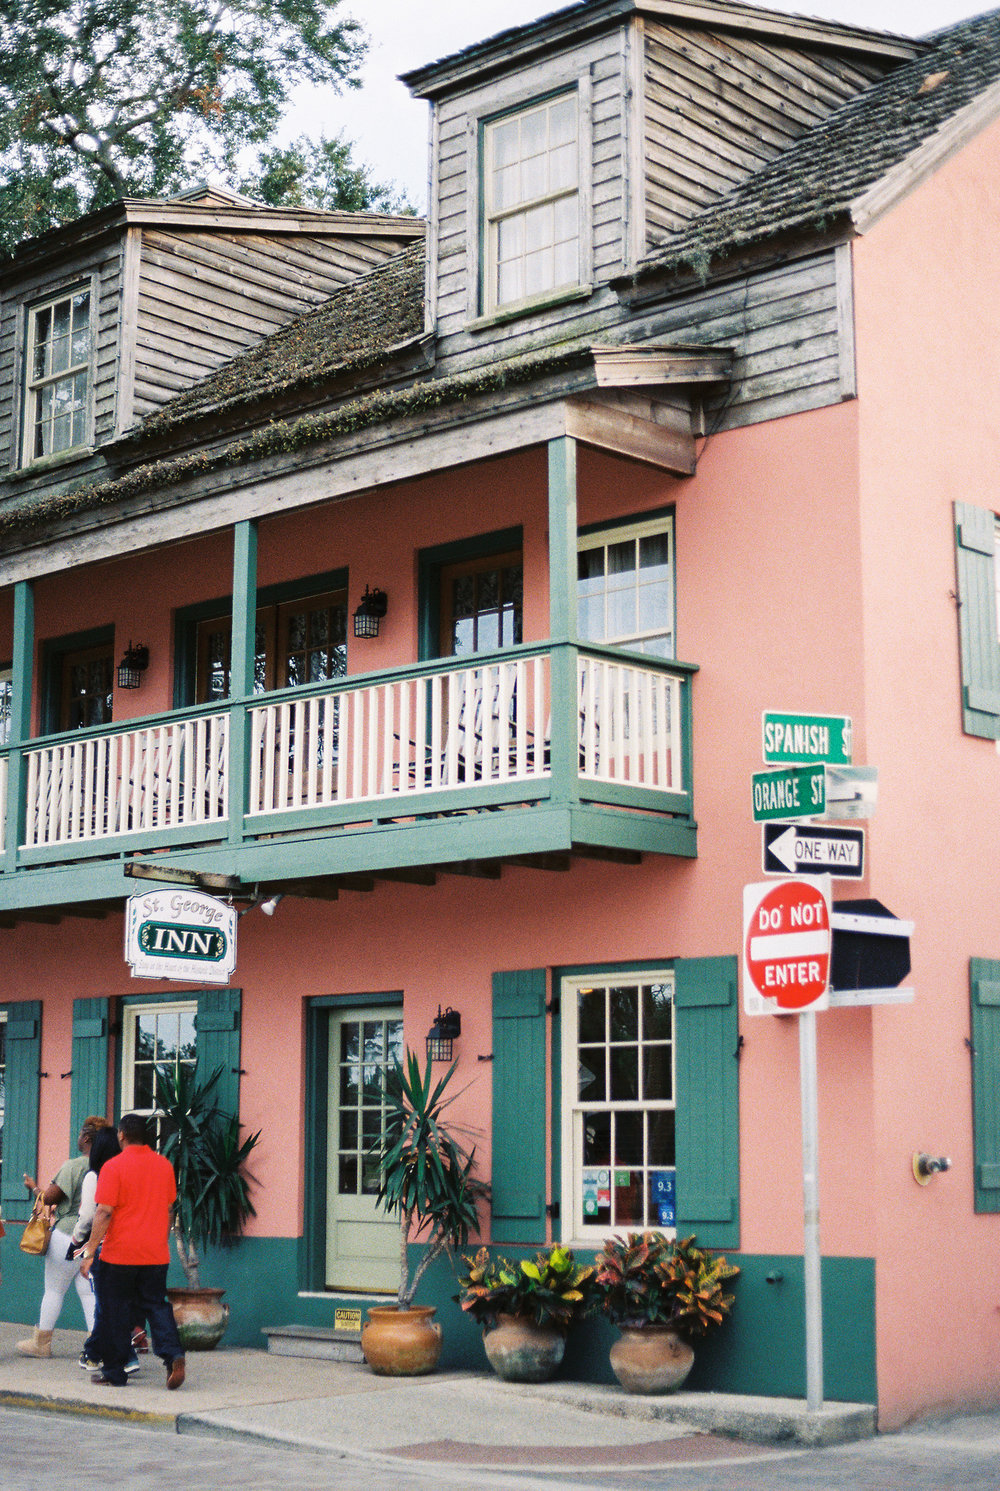 st augustine downtown orange street, king street, and spanish street architecture photo